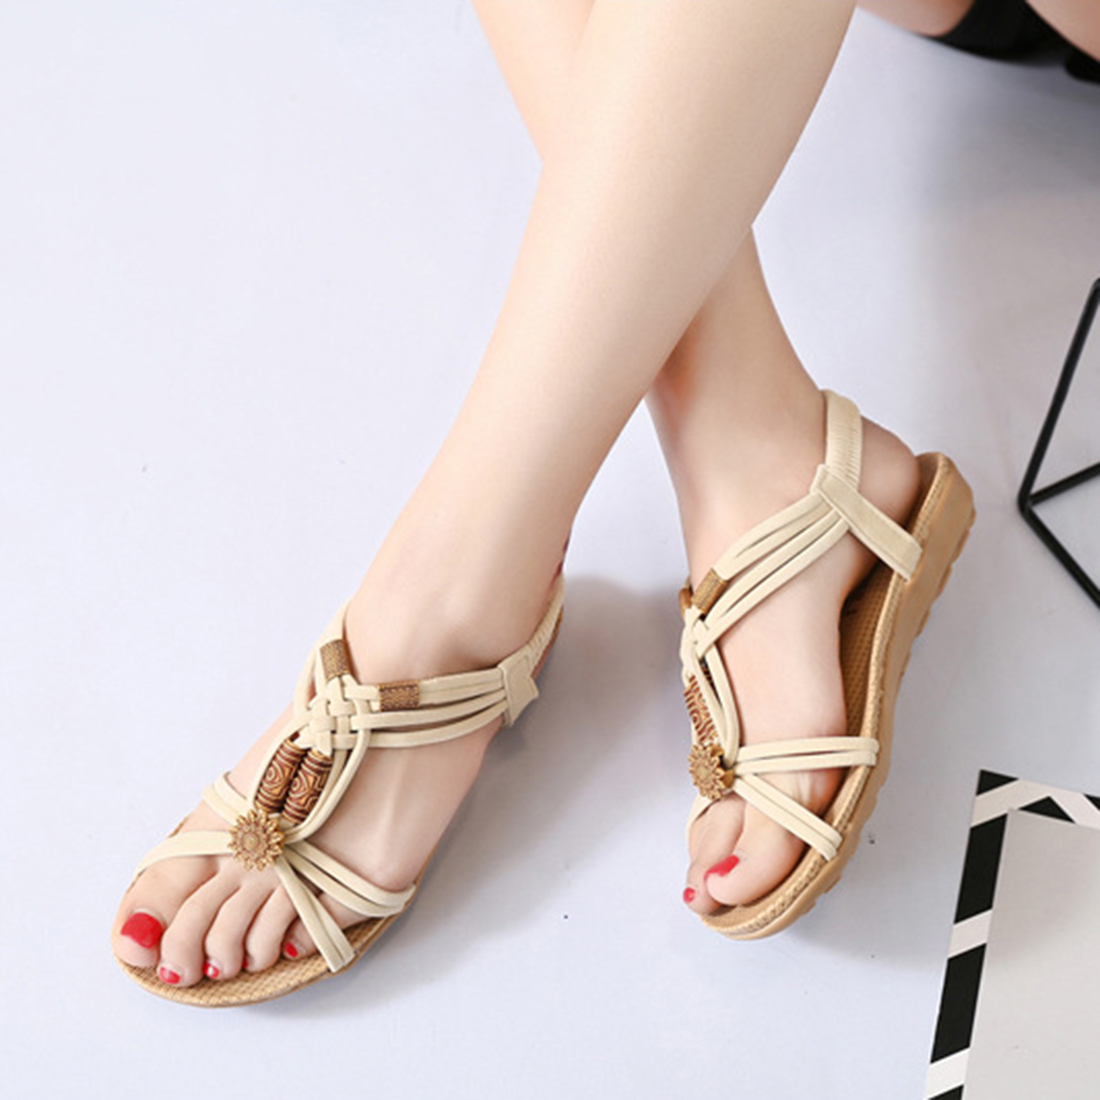 SHUJIN Ladies Summer Fashion Casual Bohemian  Beads Sandals   Ankle Slingback Flats  Flops Shoes Beach Thong Sandals